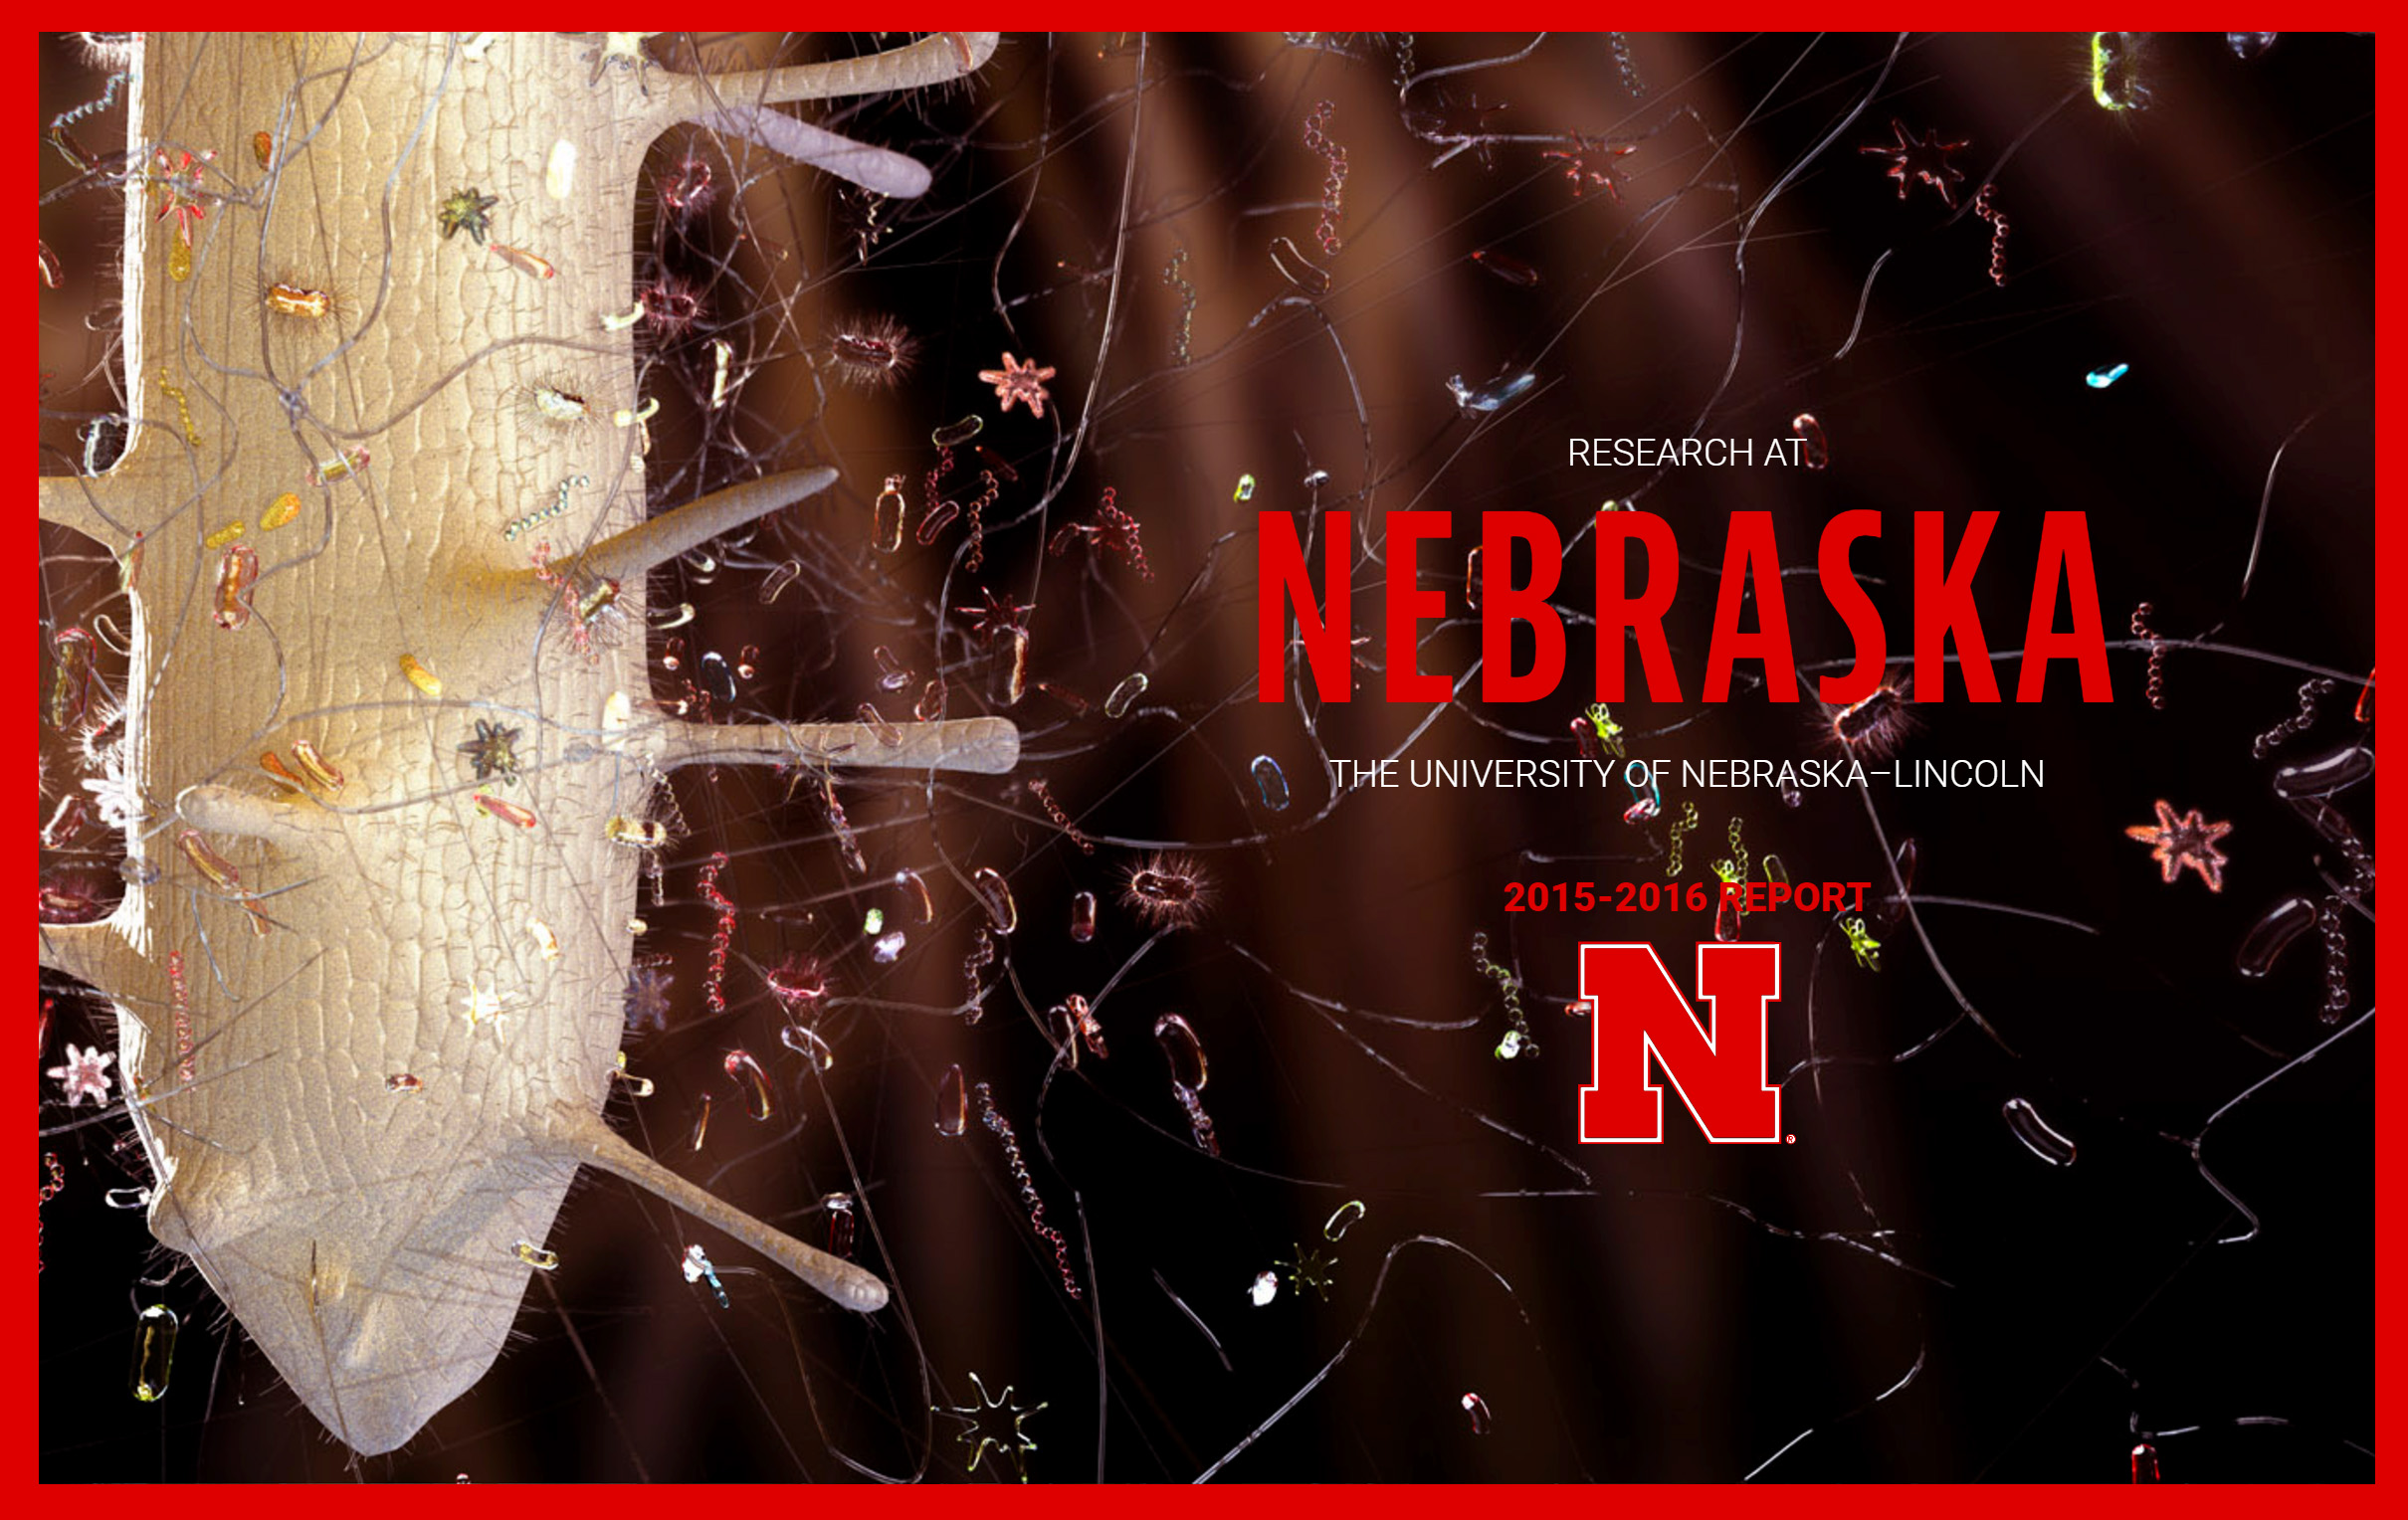 UNL Office of Resarch 2016 Online Annual Report